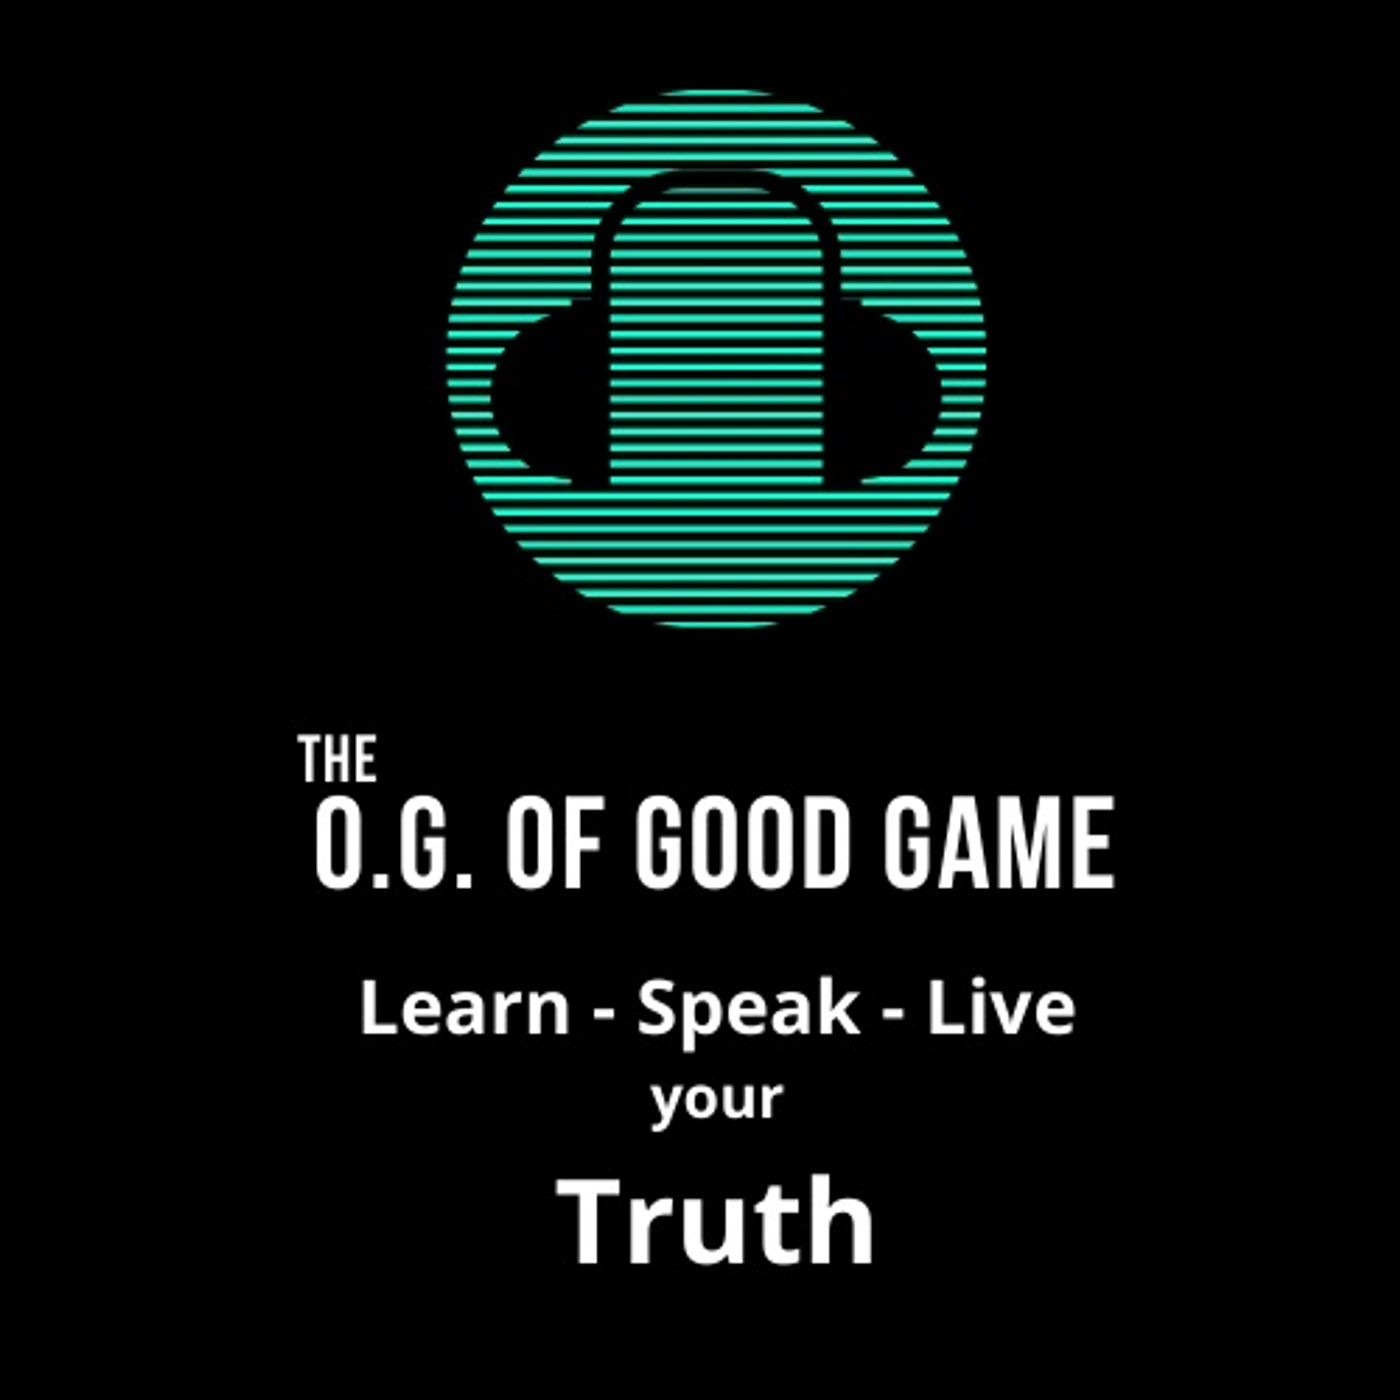 The O.G. of Good Game will be back 7-15-2020